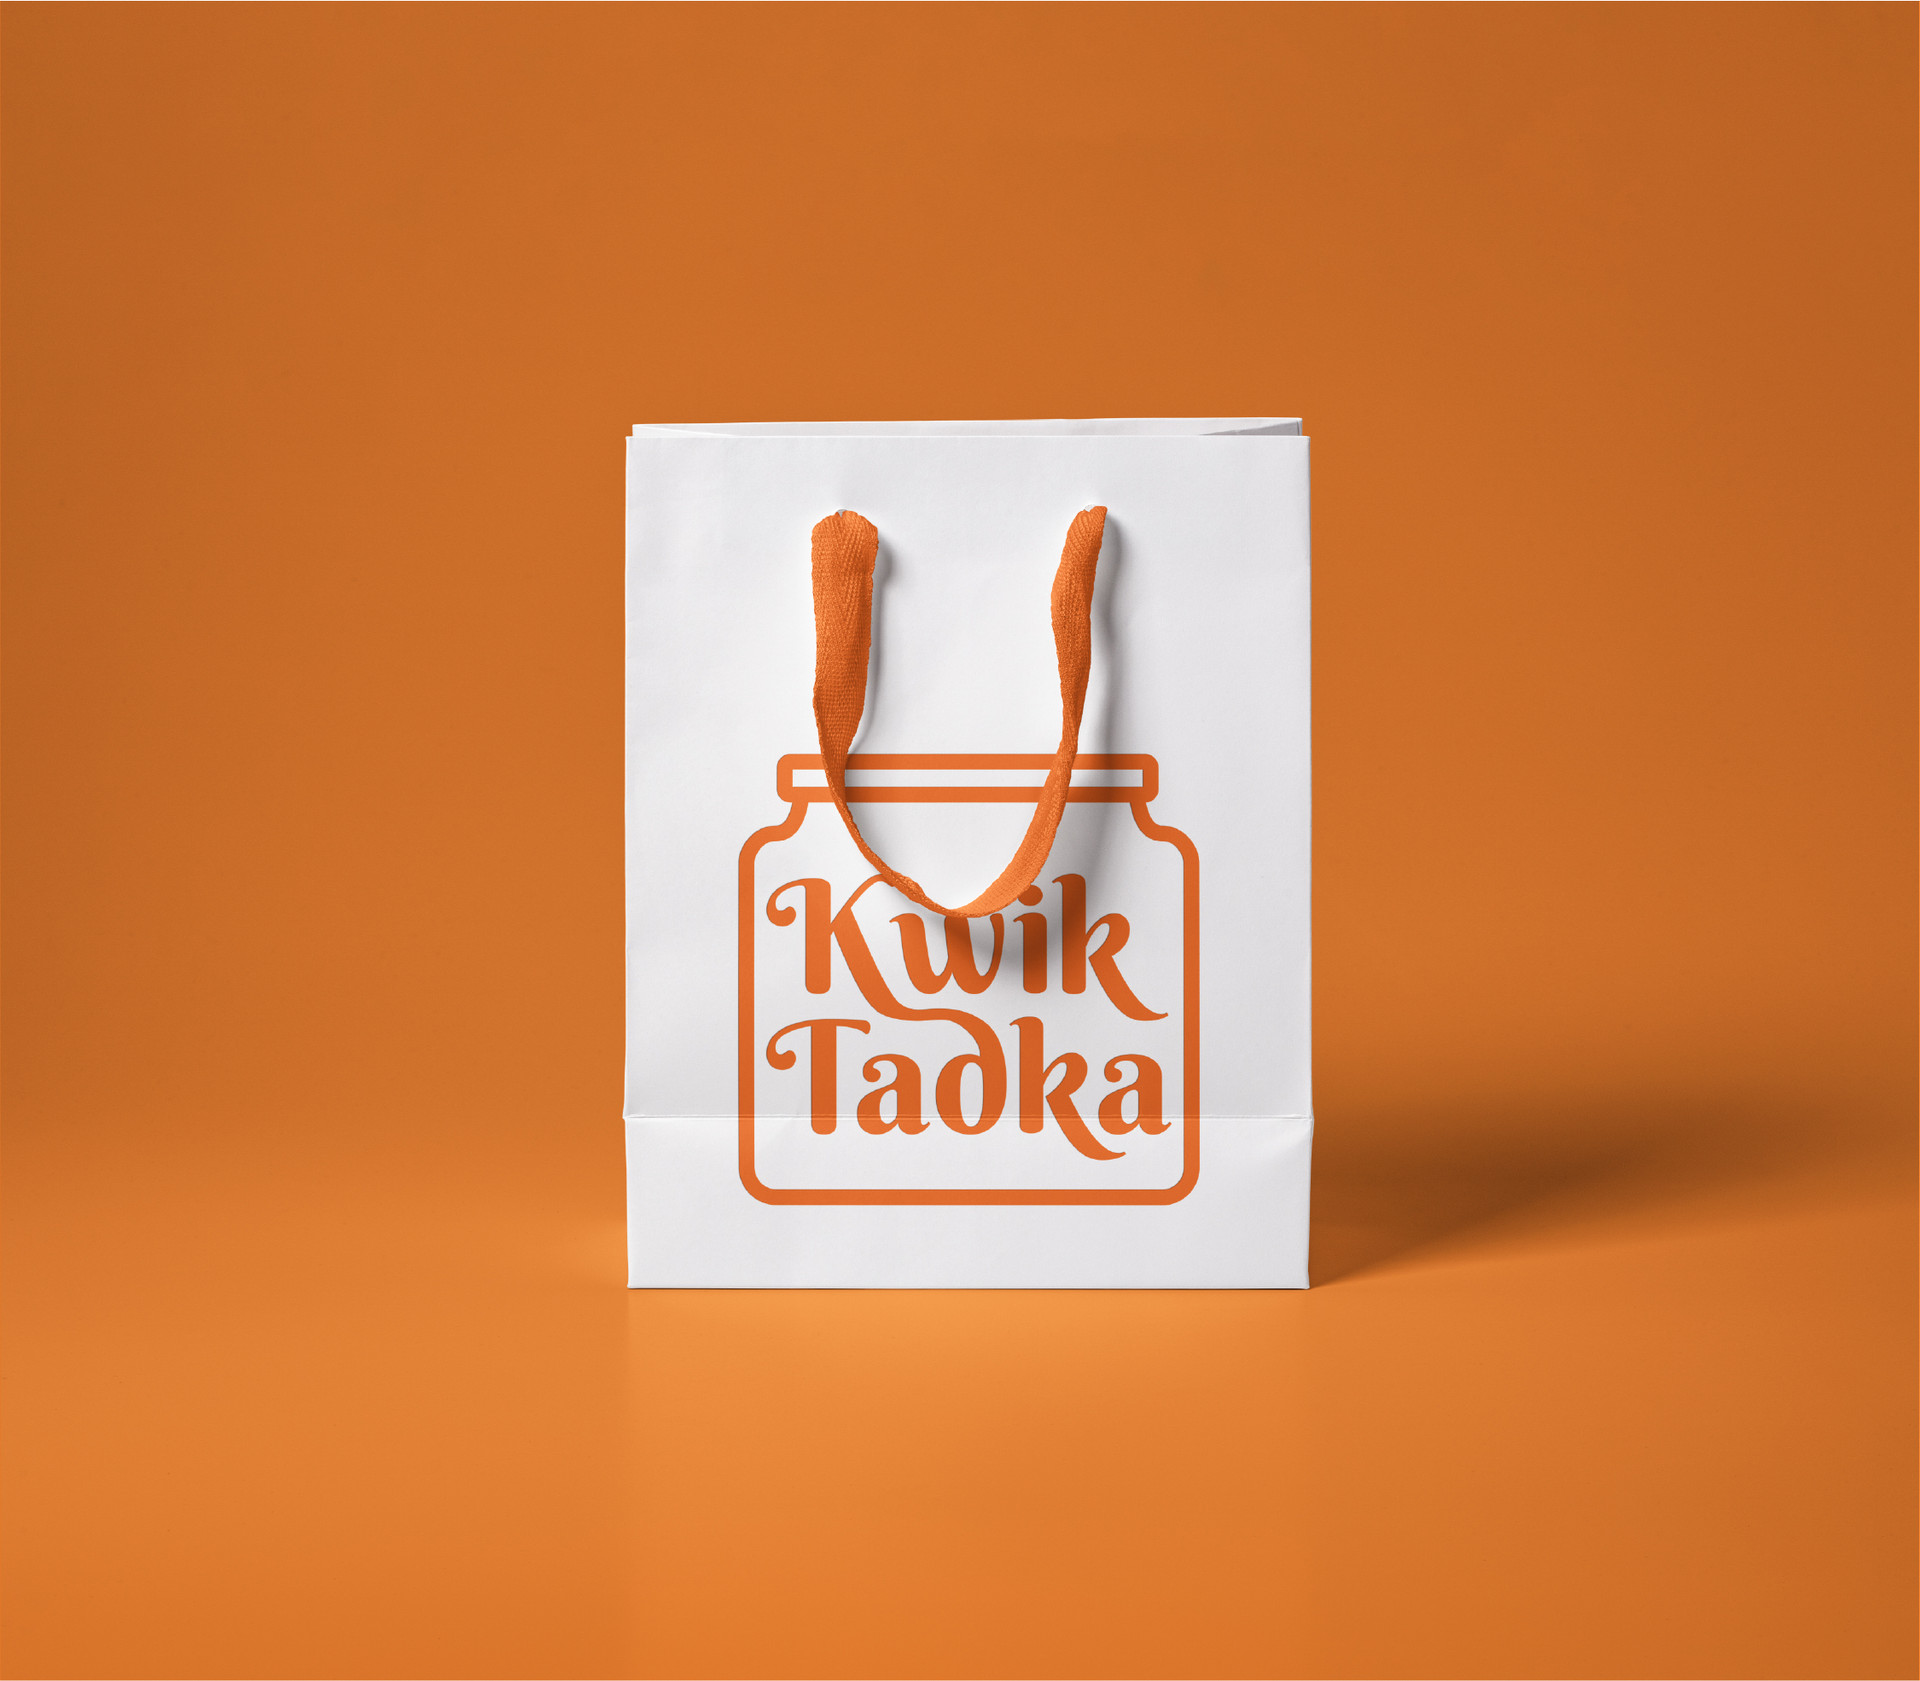 Kwik Tadka Bag.jpg